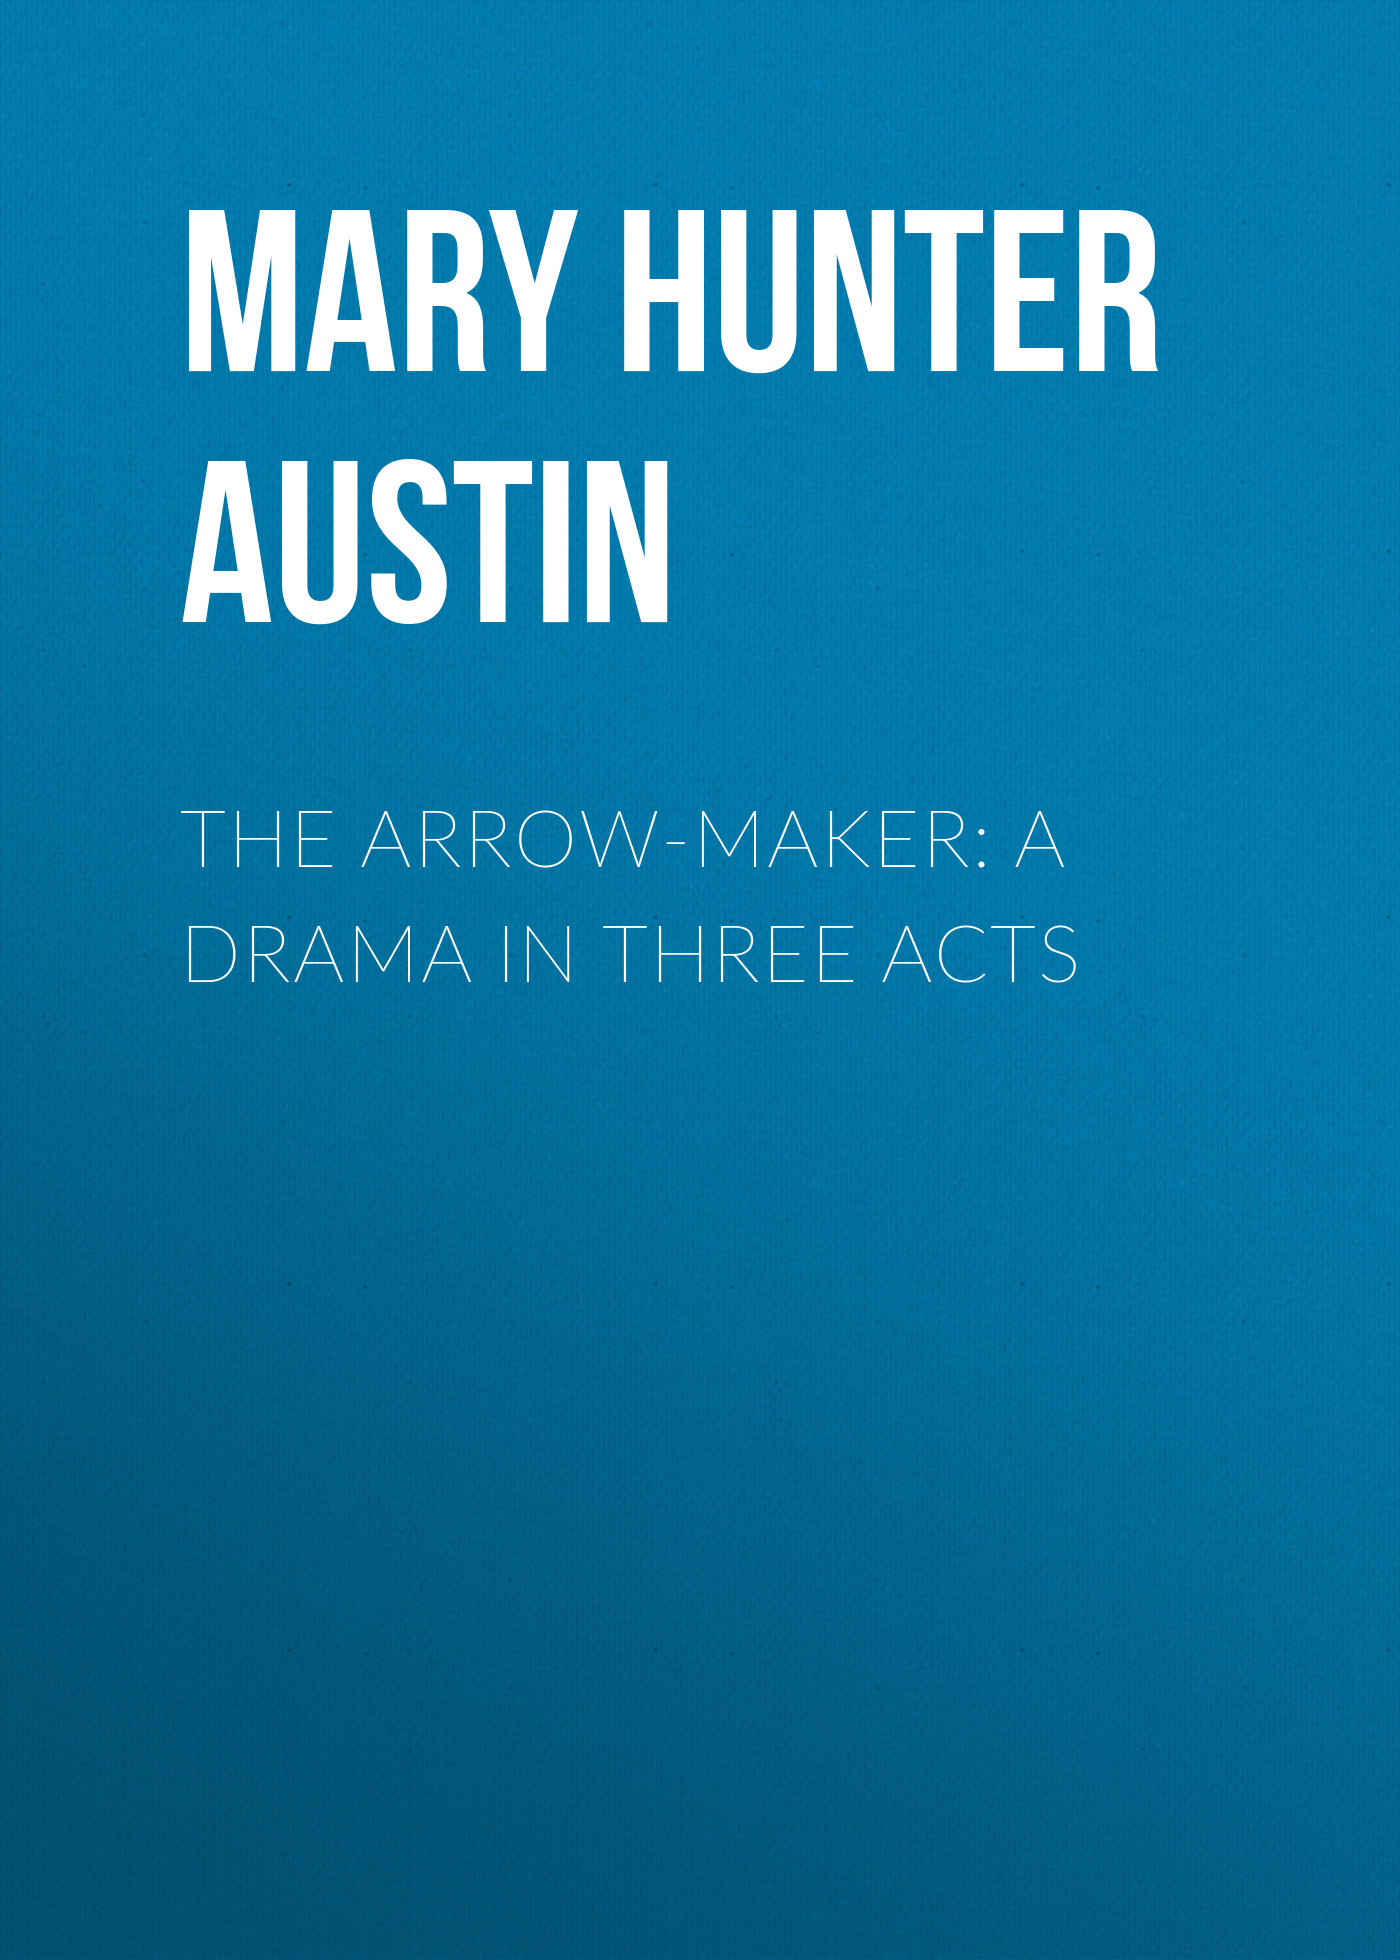 Mary Hunter Austin The Arrow-Maker: A Drama in Three Acts joanna baillie the bride microform a drama in three acts page 4 page 2